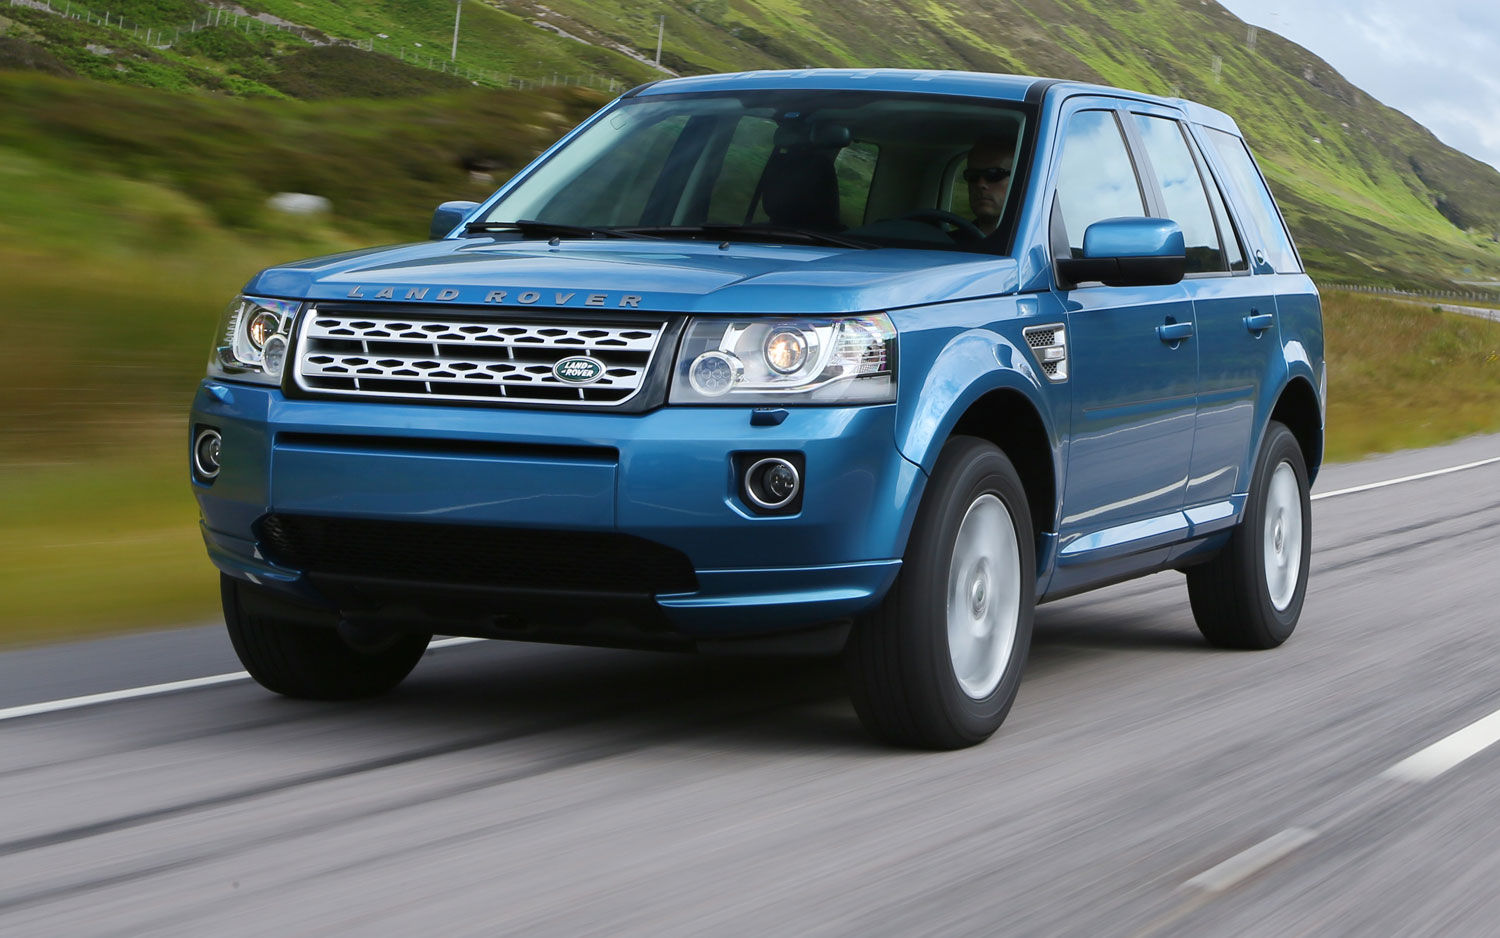 2013 Land Rover LR2 Euro Spec In Motion Closer View1